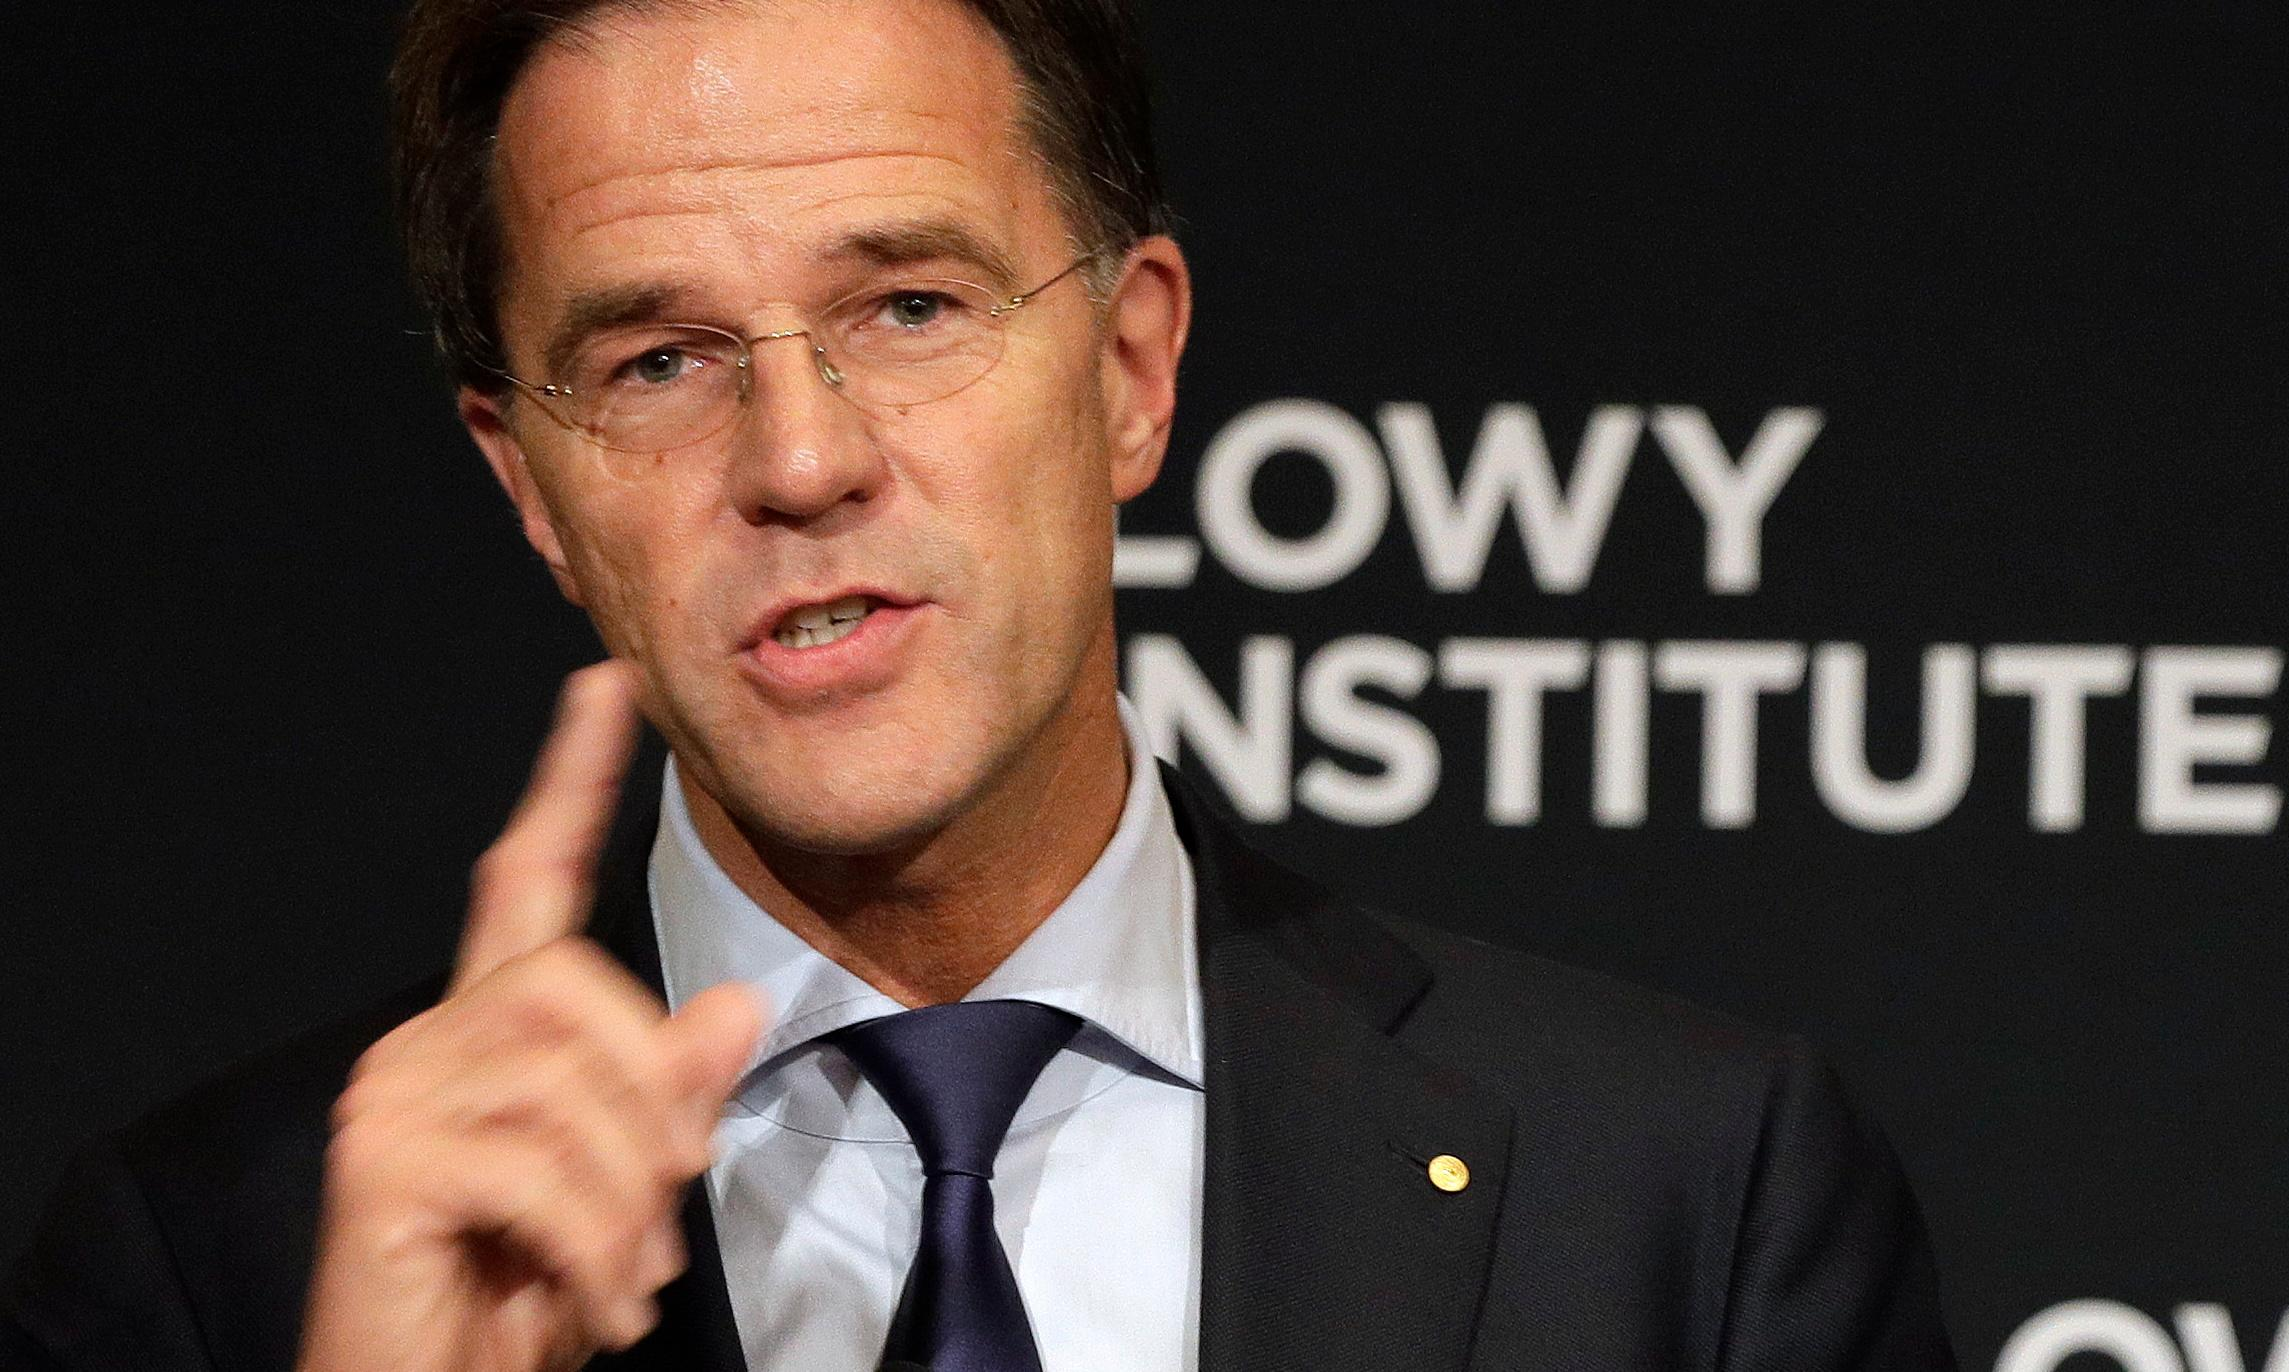 Dutch PM urges middle powers to help fix 'flawed' international order